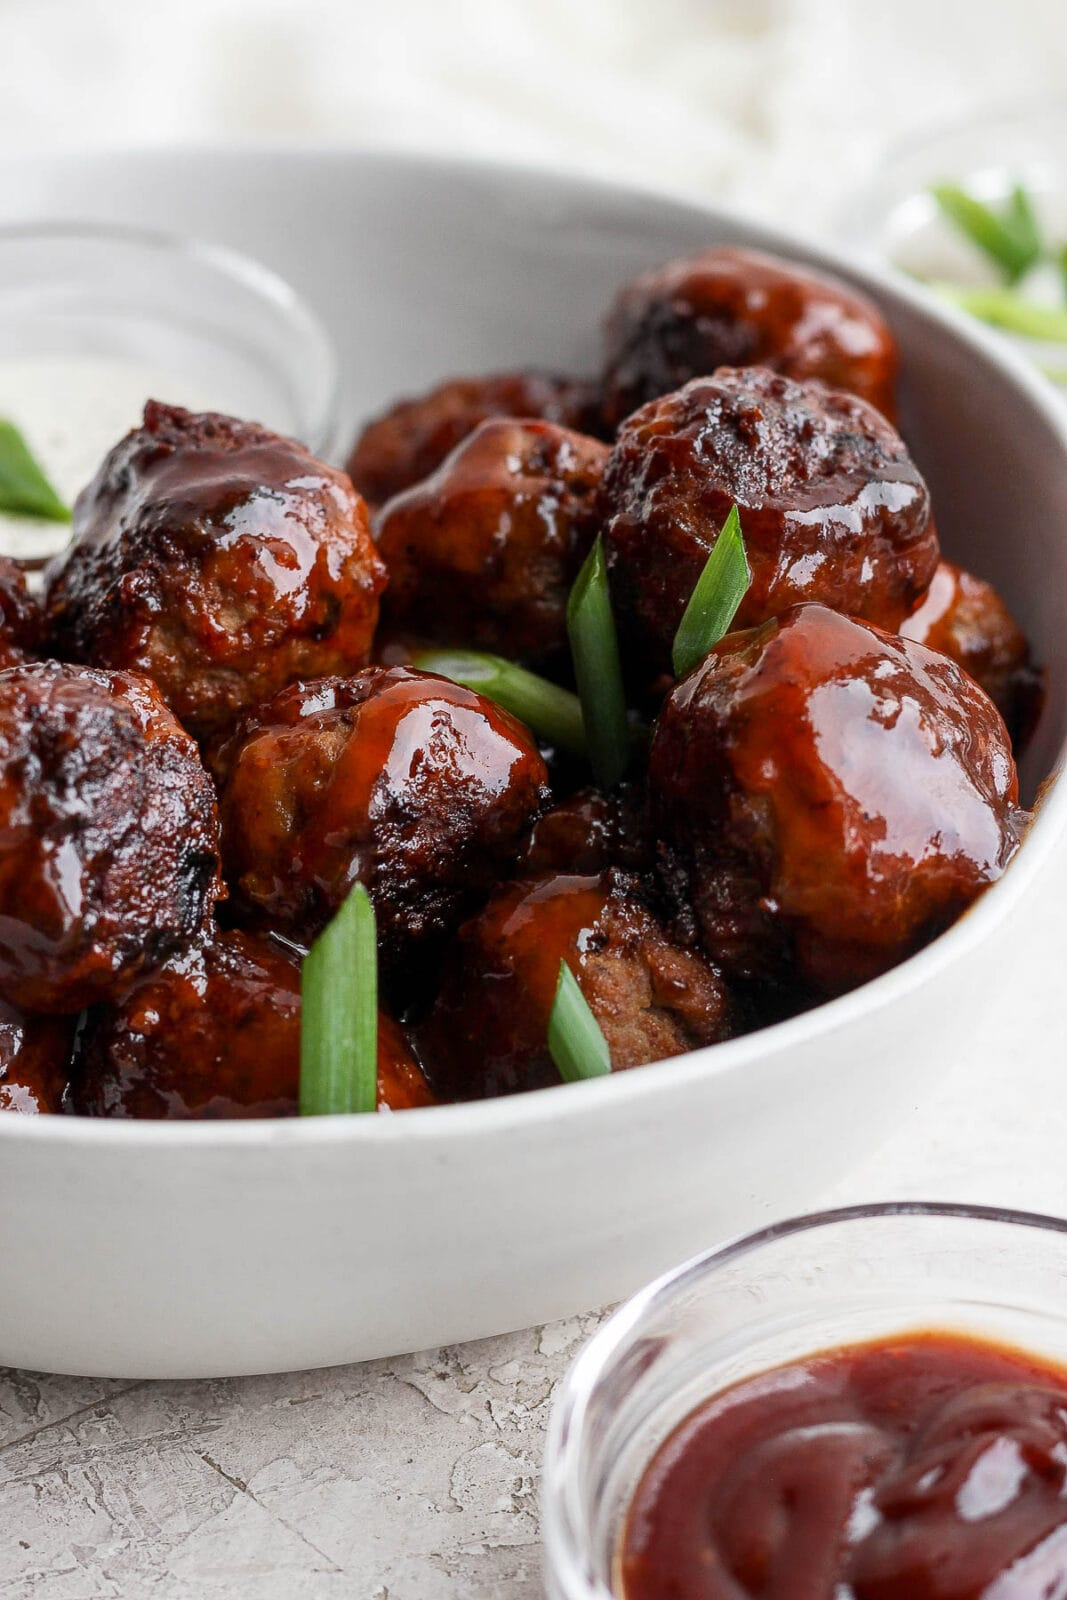 Bowl of BBQ meatballs with sliced green onions and dipping sauce.